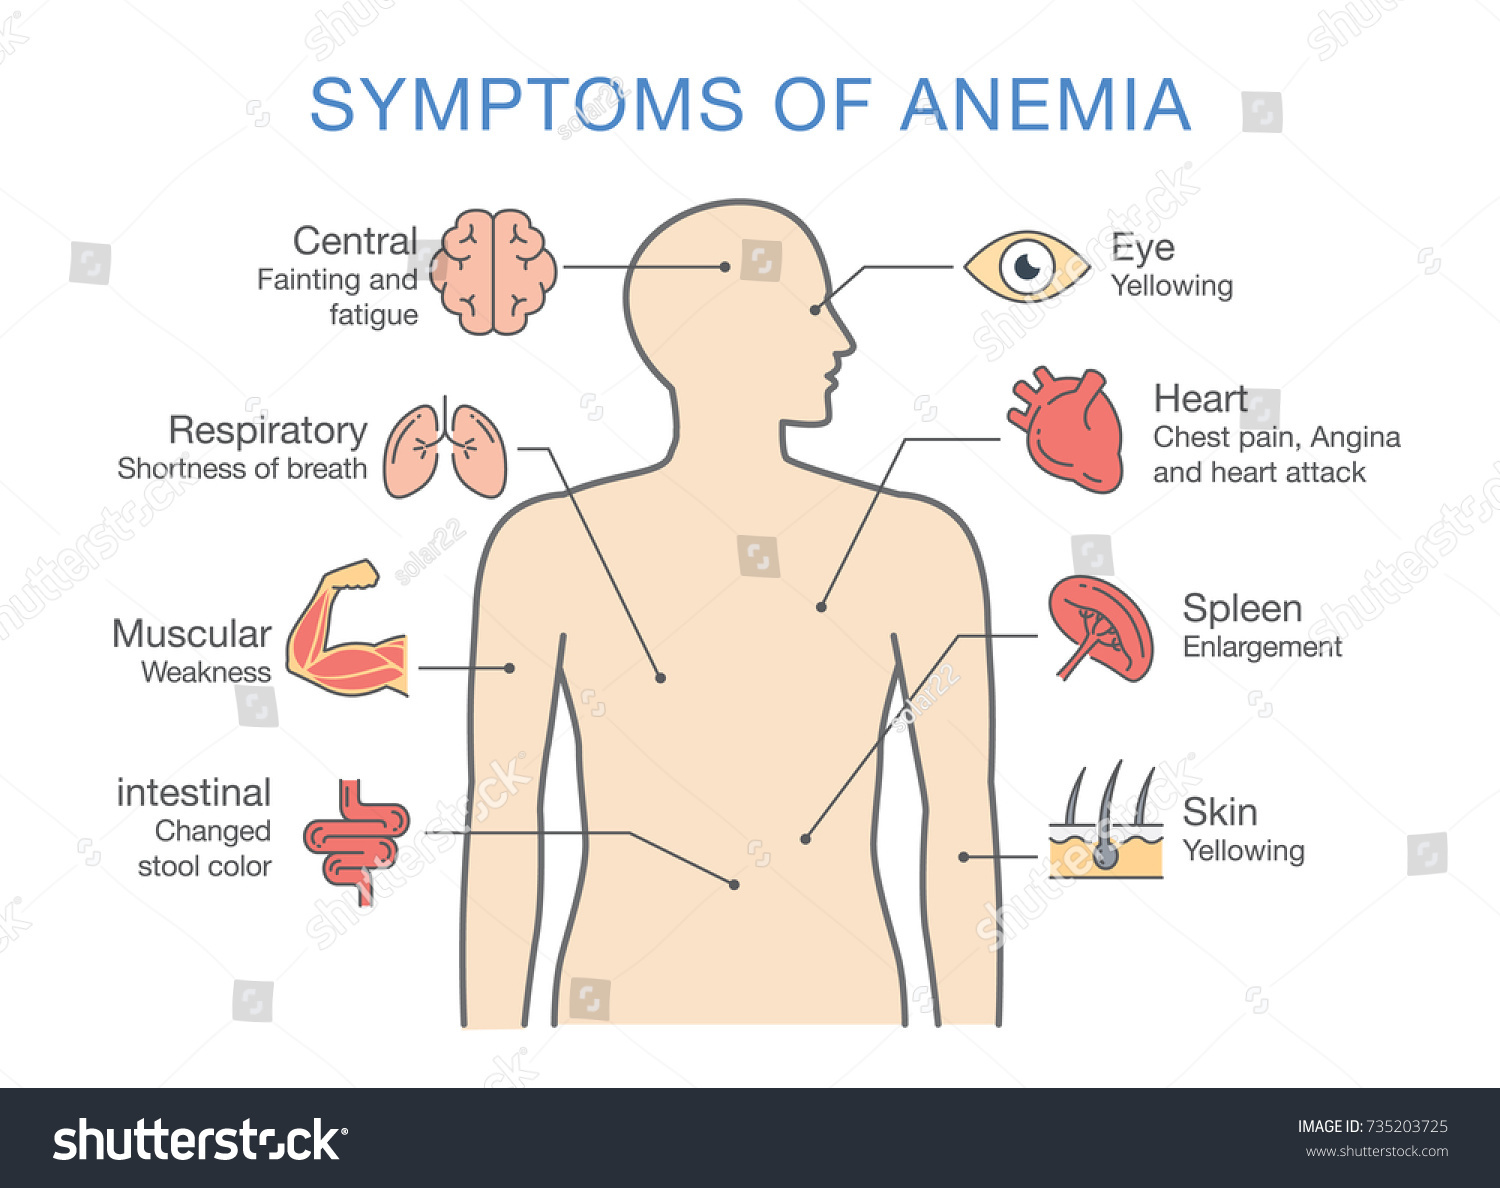 Symptoms Common Many Types Anemia Illustration Stock